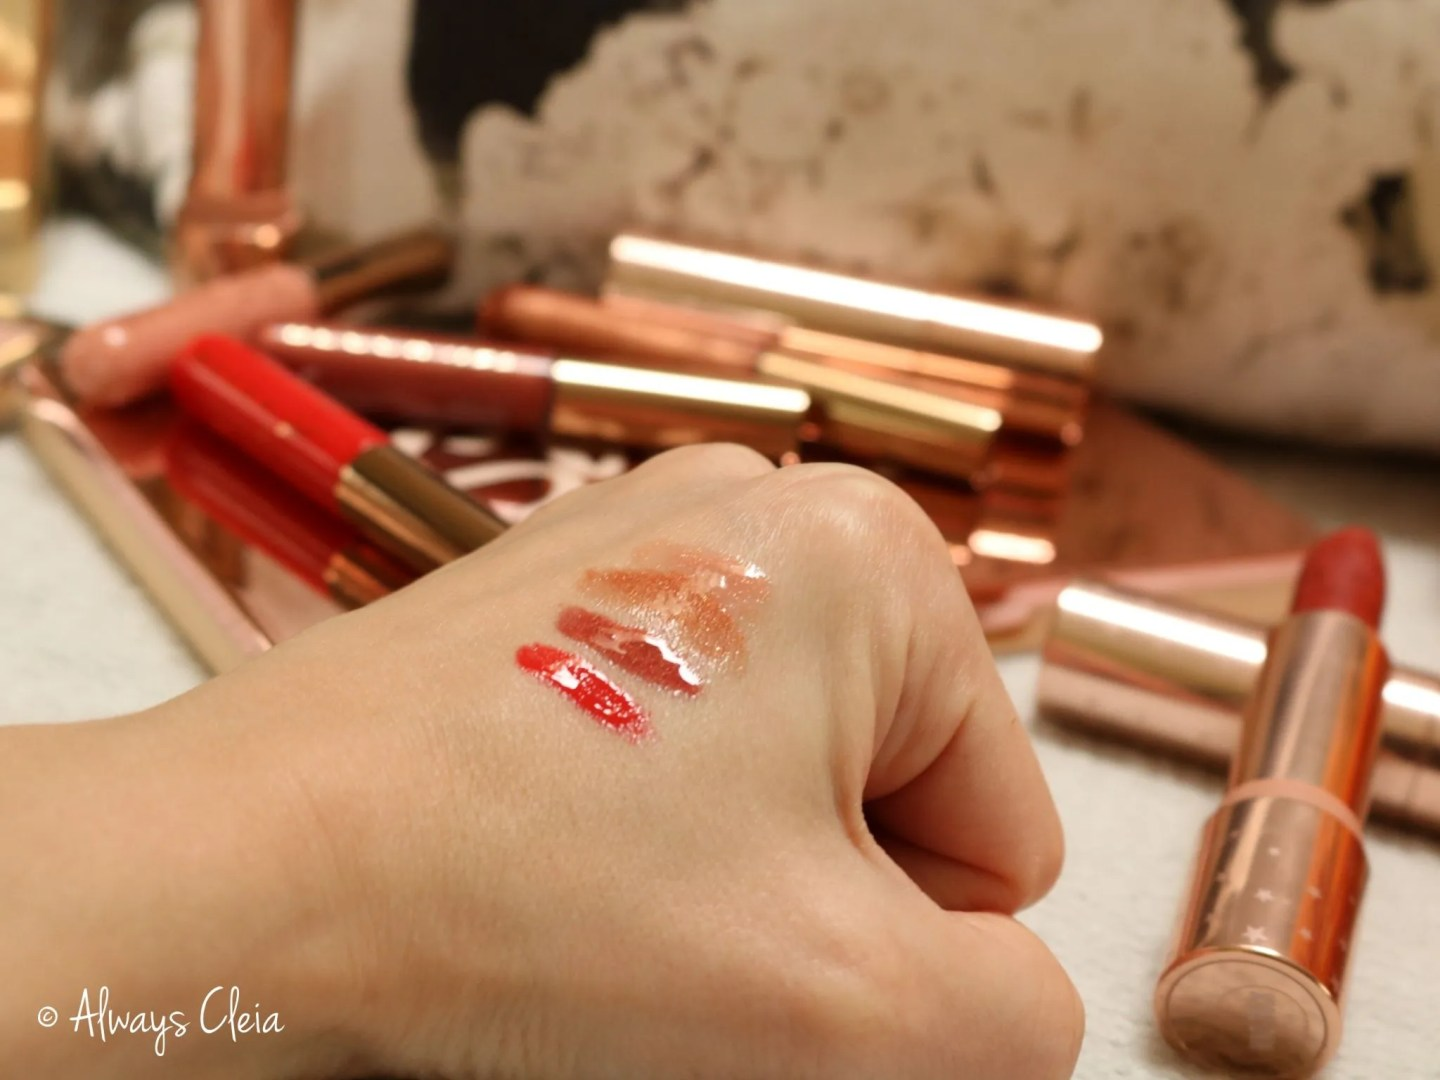 Becca Chrissy Teigan Lip Icing Swatches